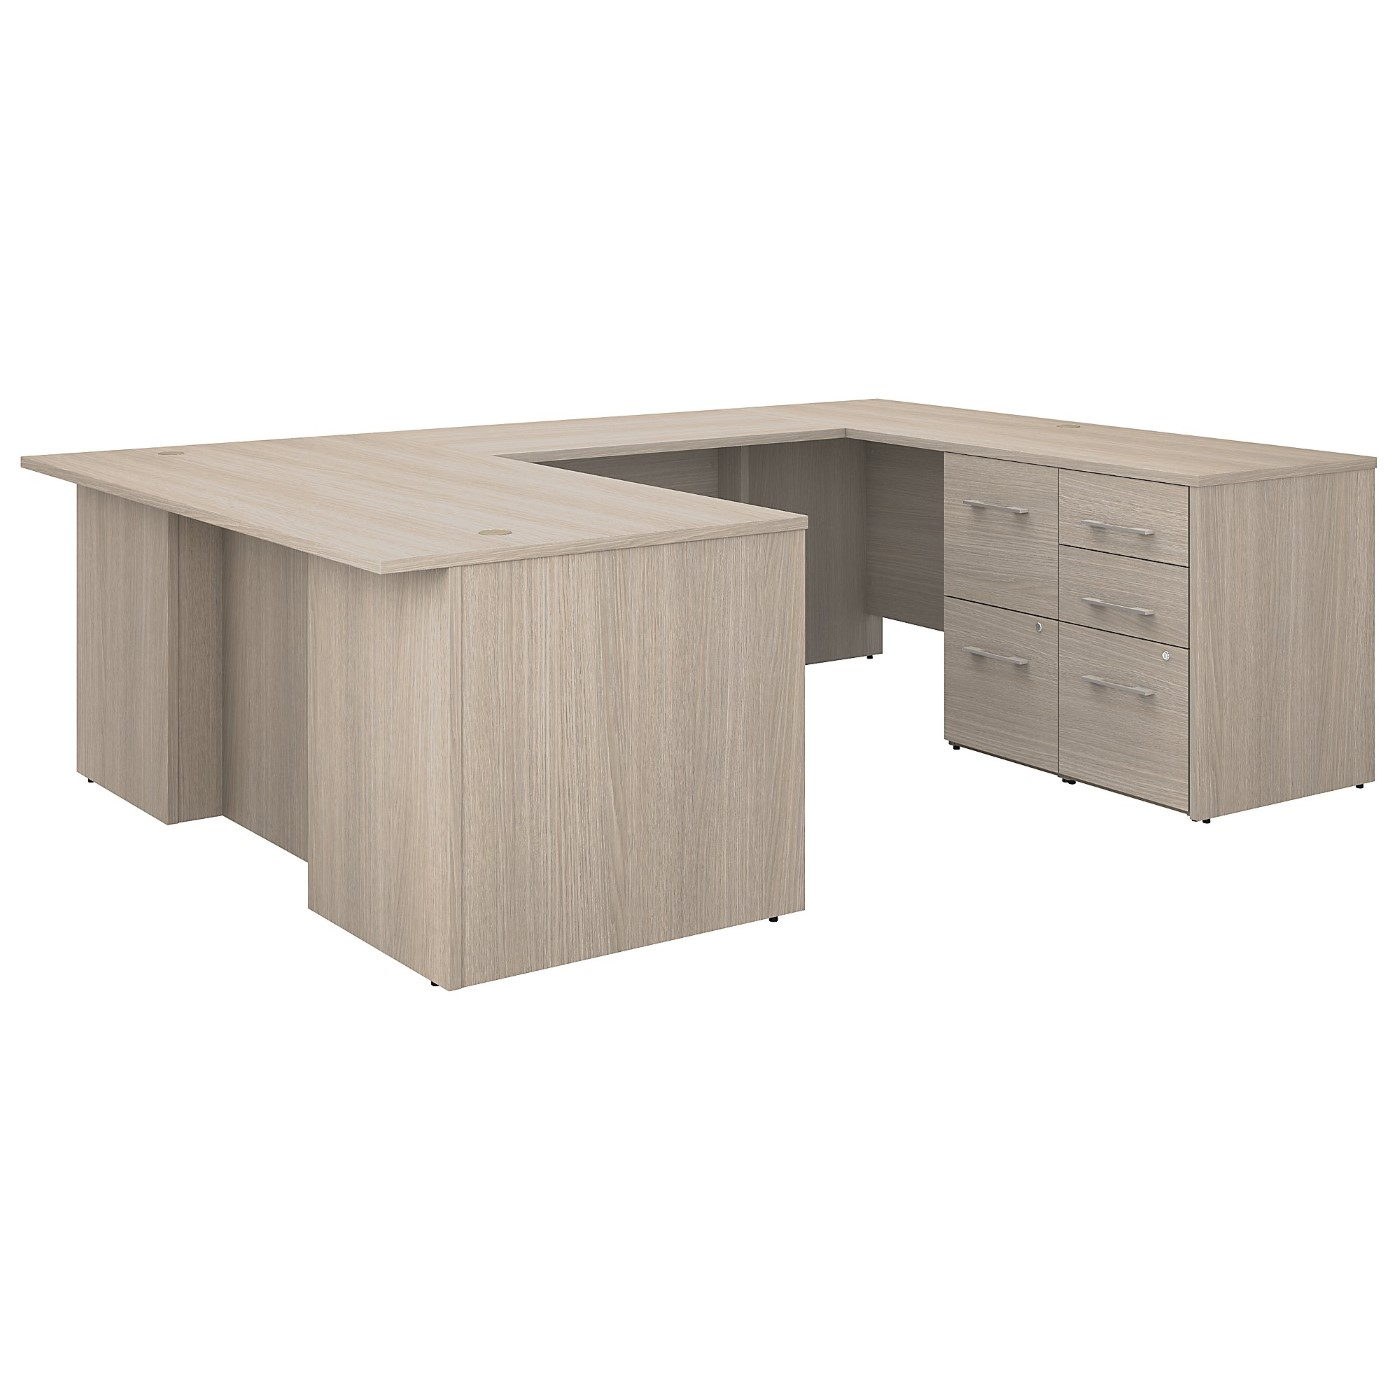 BUSH BUSINESS FURNITURE OFFICE 500 72W U SHAPED EXECUTIVE DESK WITH DRAWERS. FREE SHIPPING